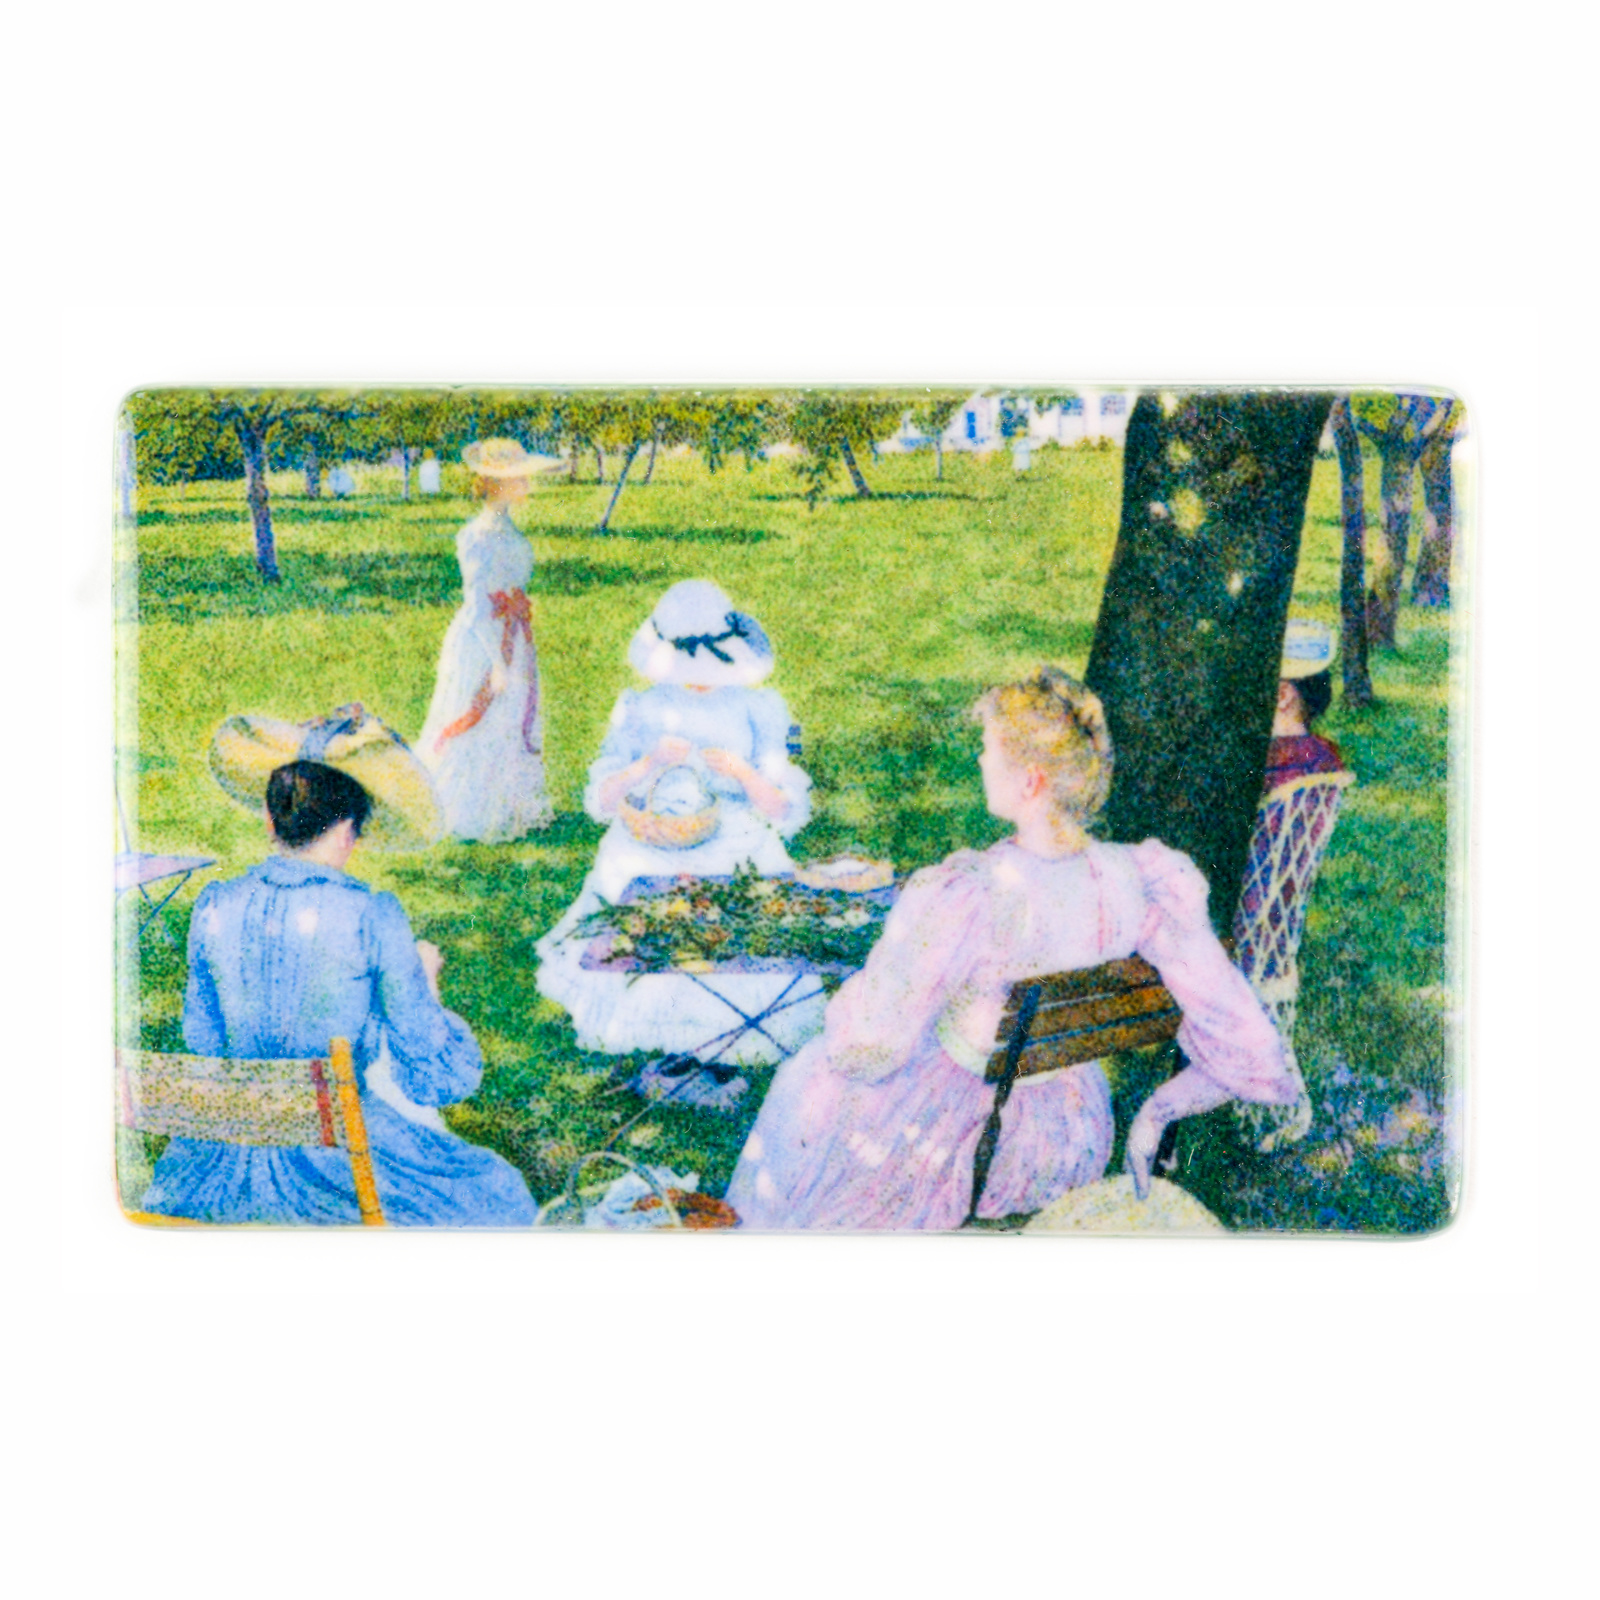 Fridge magnet Théo van Rysselberghe - The orchard